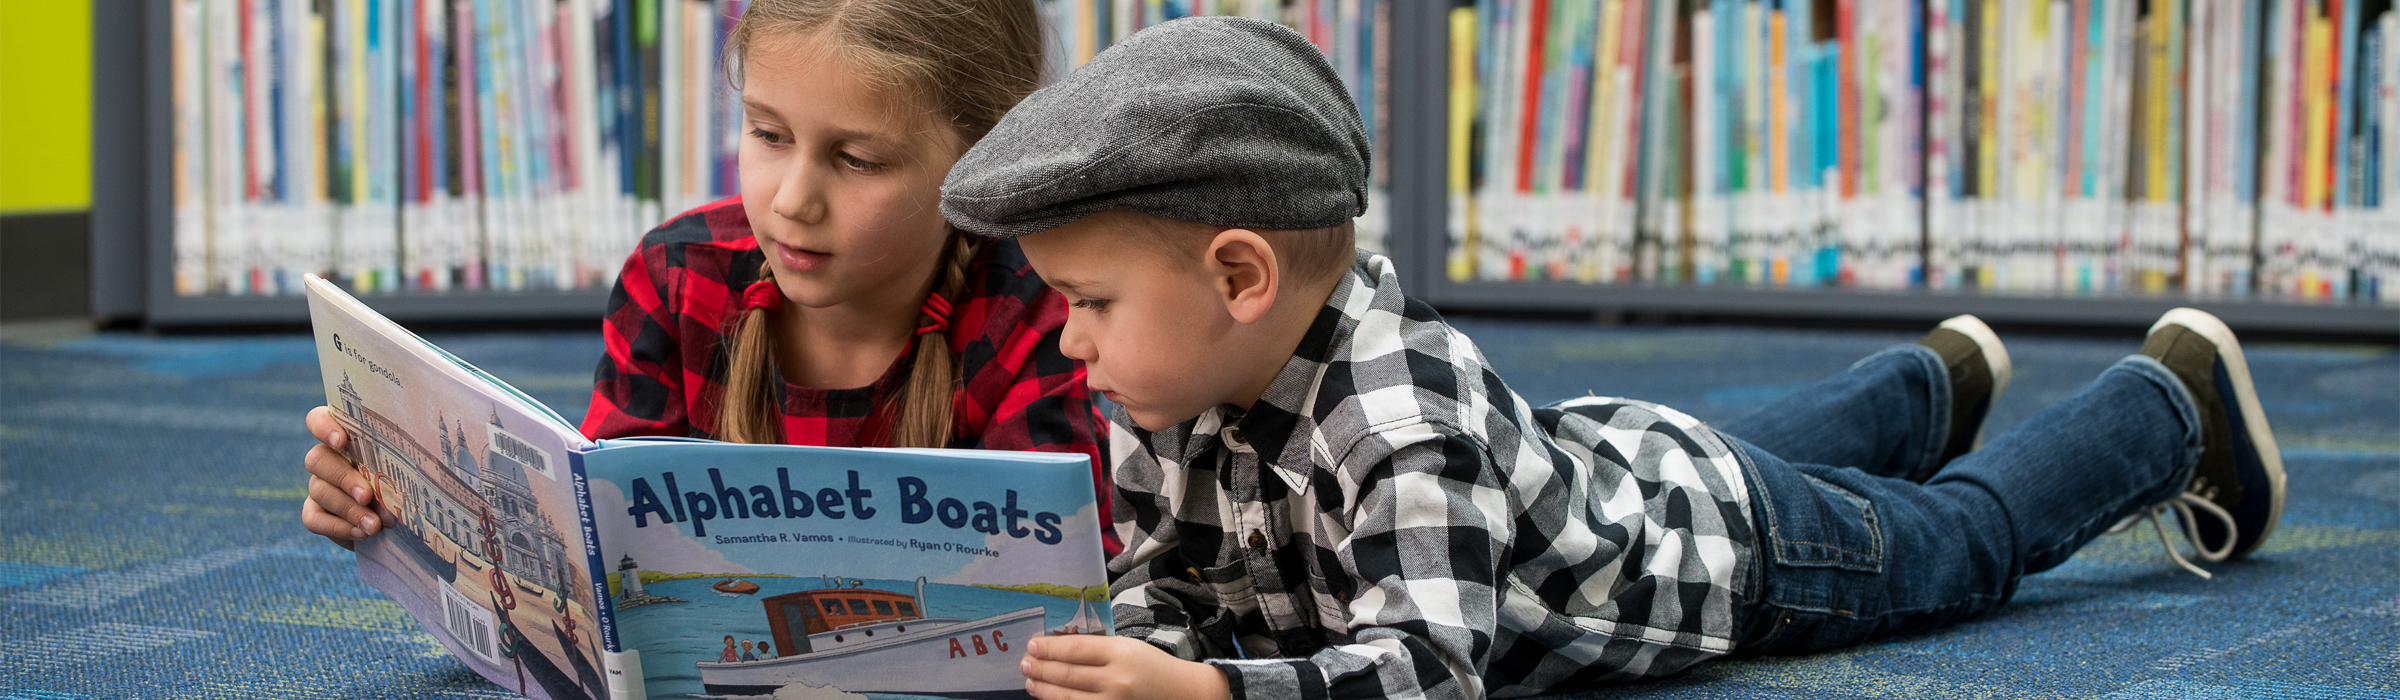 Two children reading a picture book together.